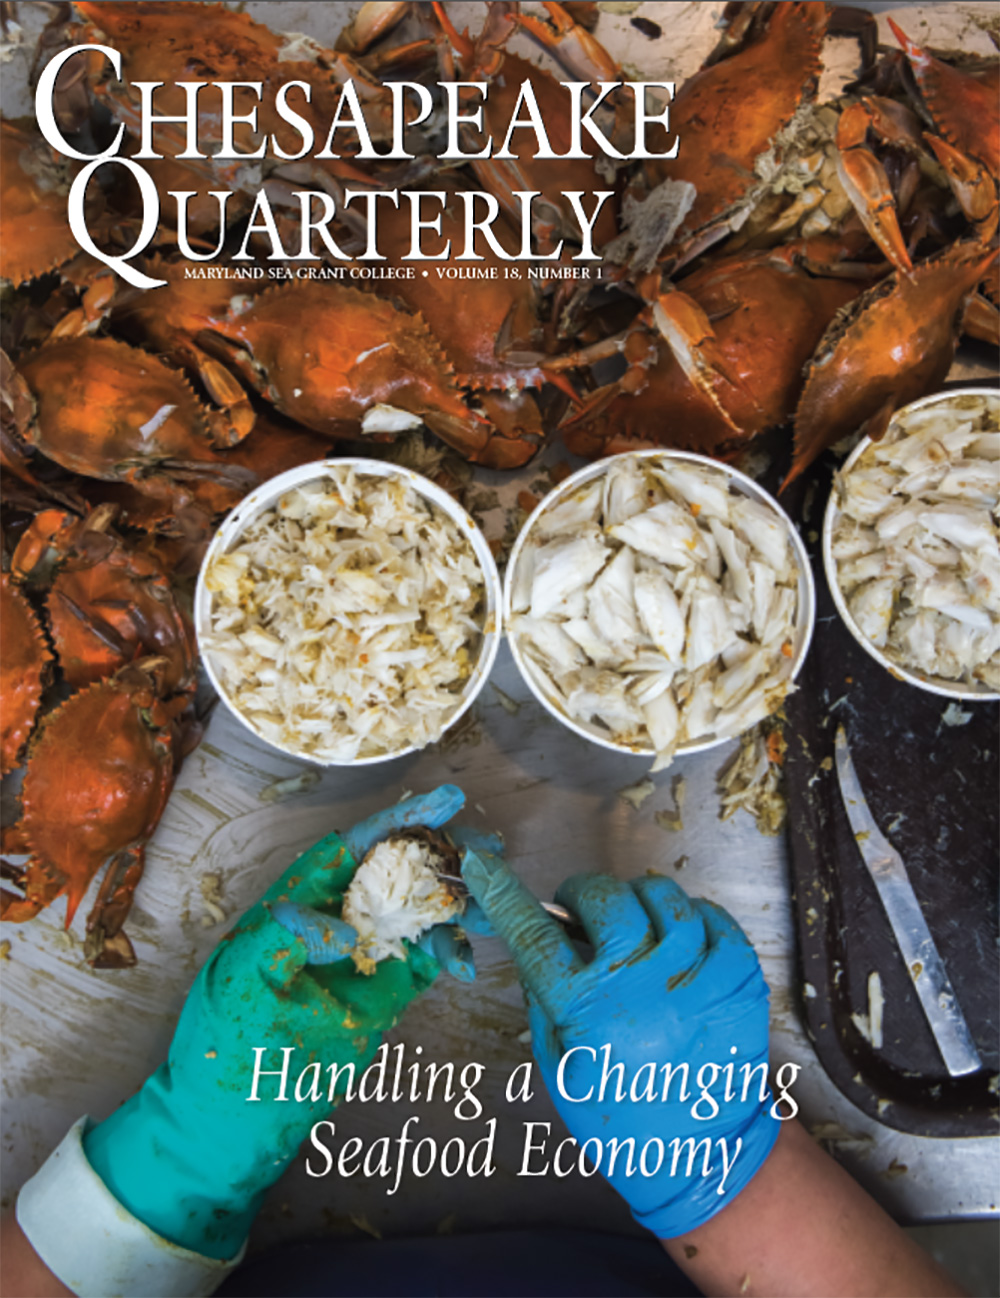 Volume 18, Number 1 : Handling a Changing Seafood Economy